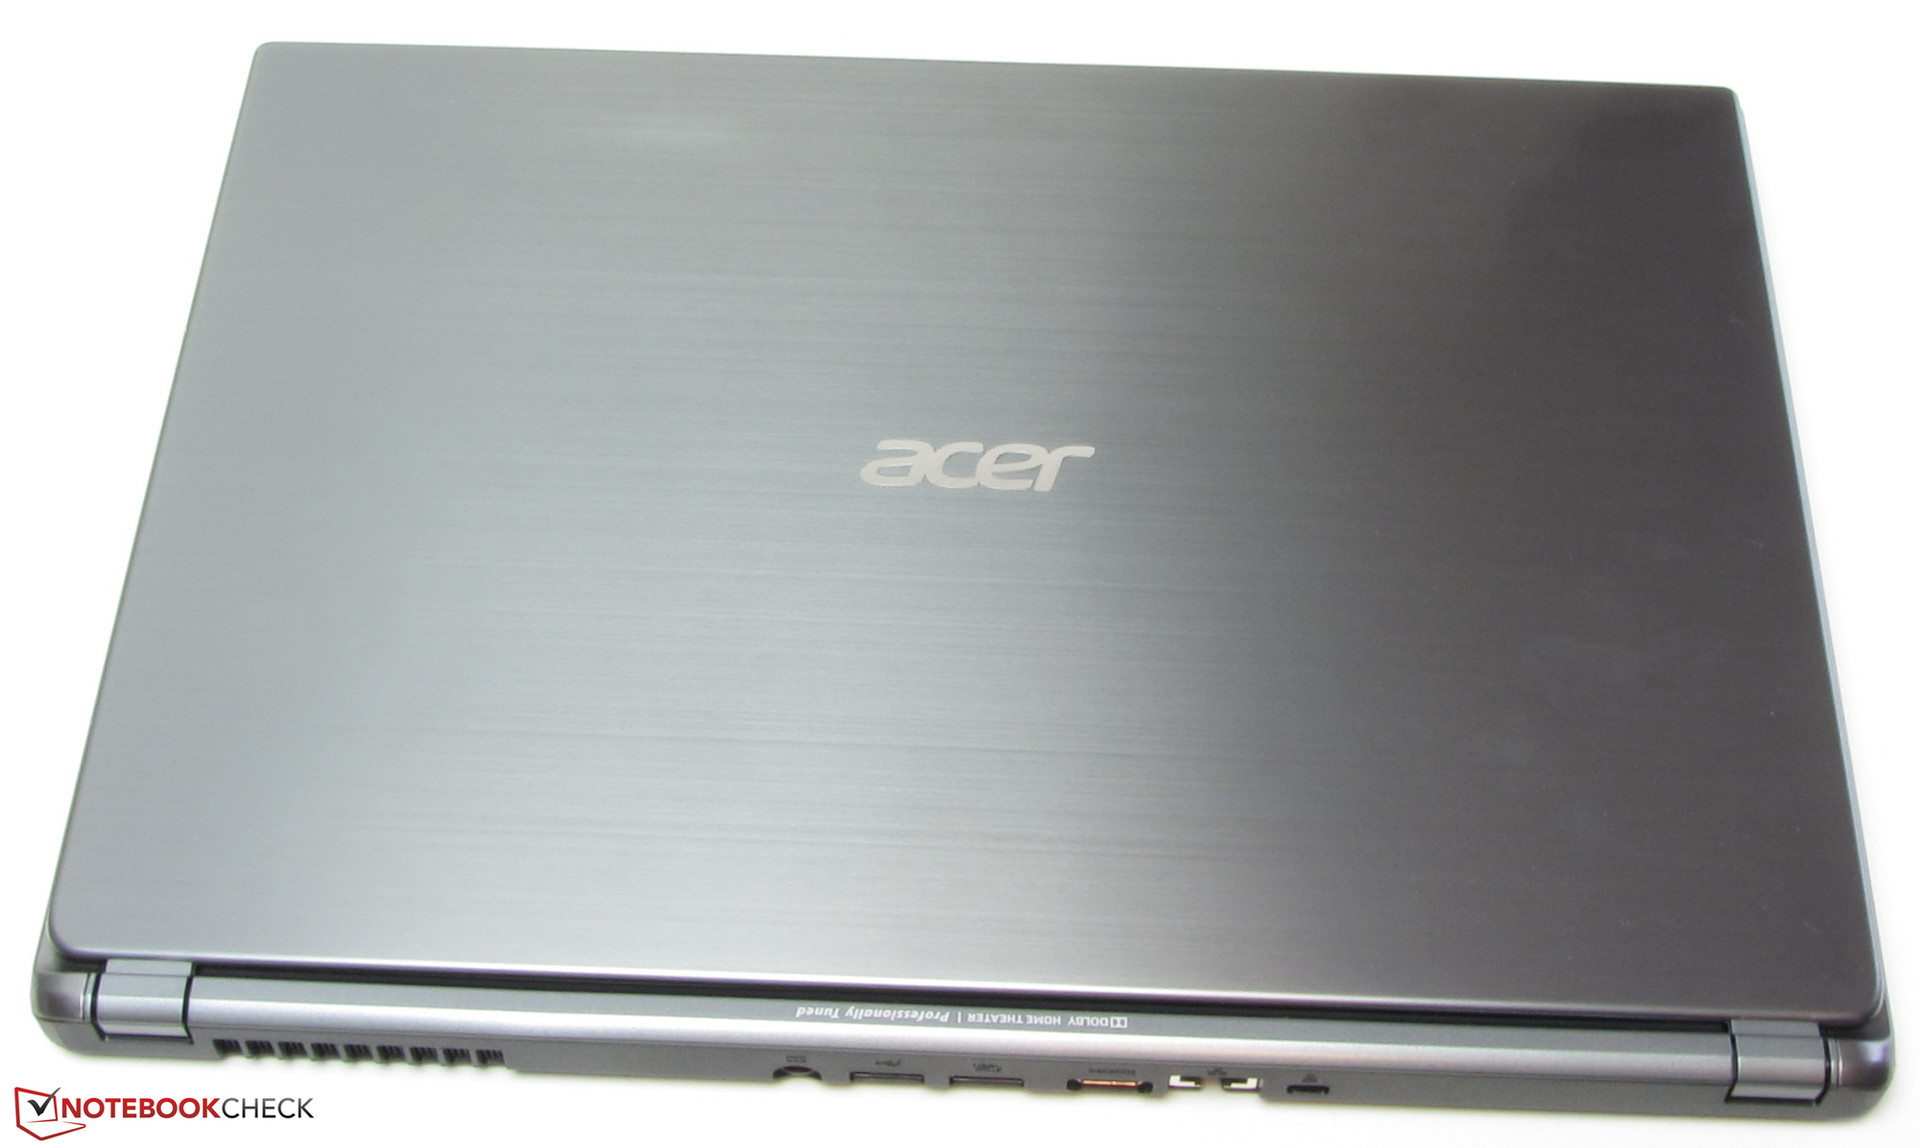 ACER EXTENSA 4010 NOTEBOOK BROADCOM BLUETOOTH DRIVERS WINDOWS XP